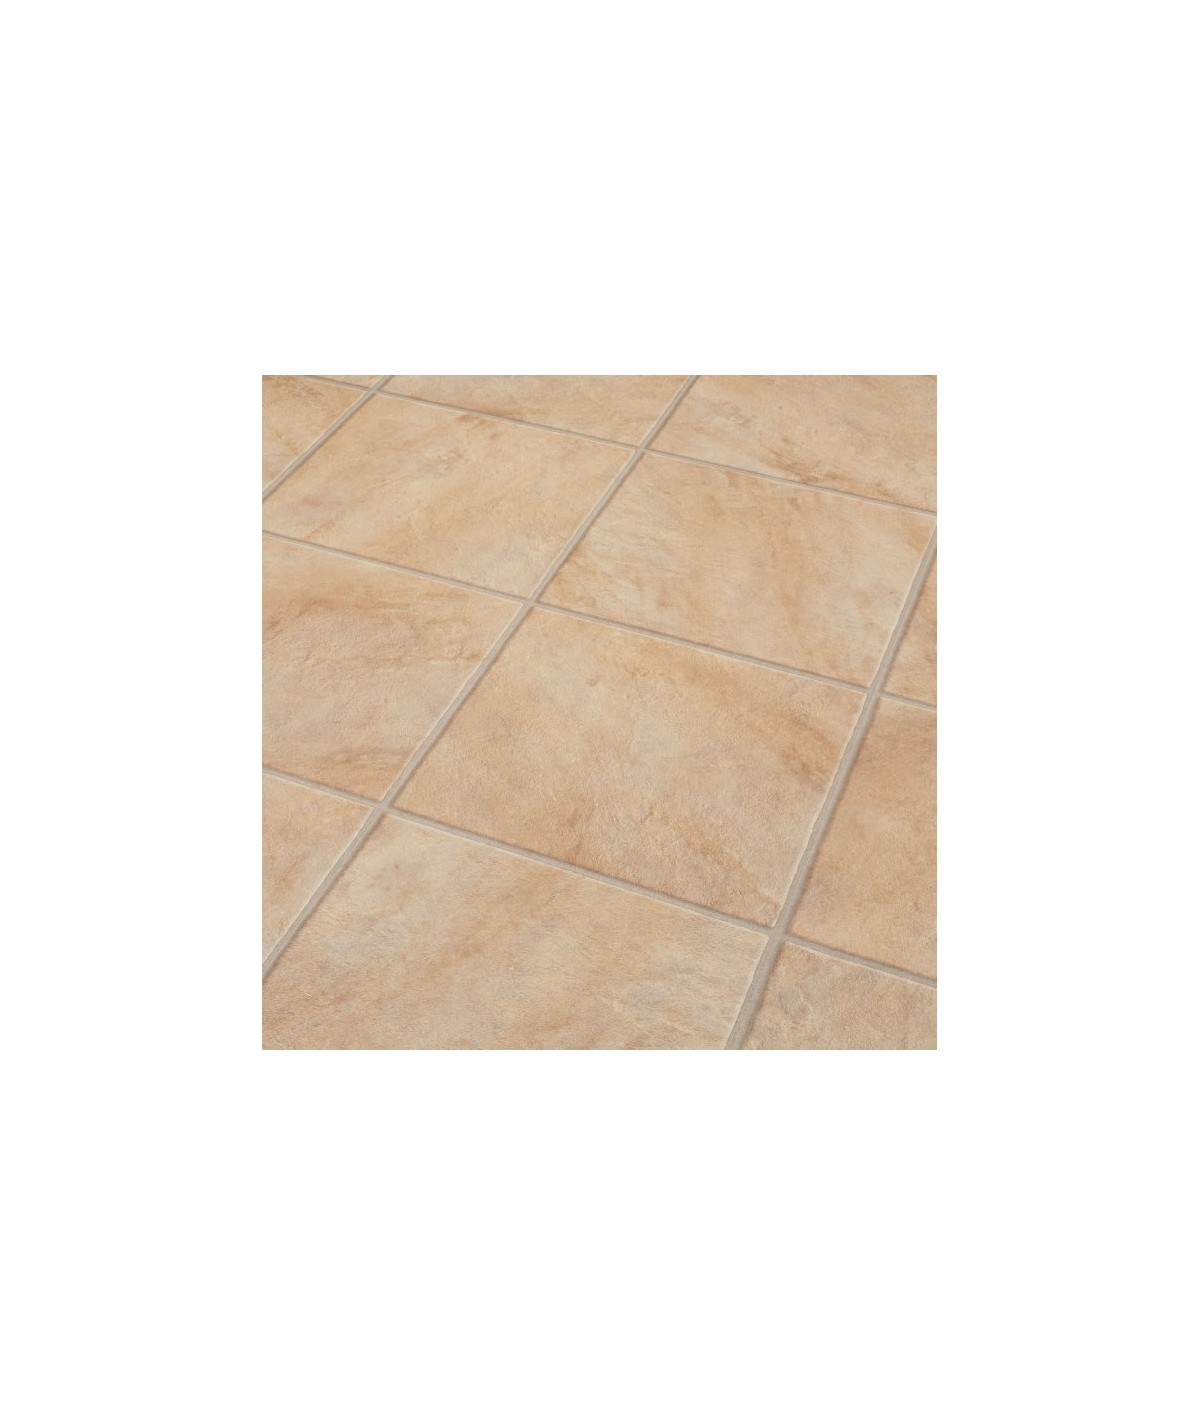 Morrocan Stone Floor Edge Adhesive Trim 10 X 2mtr Lengths